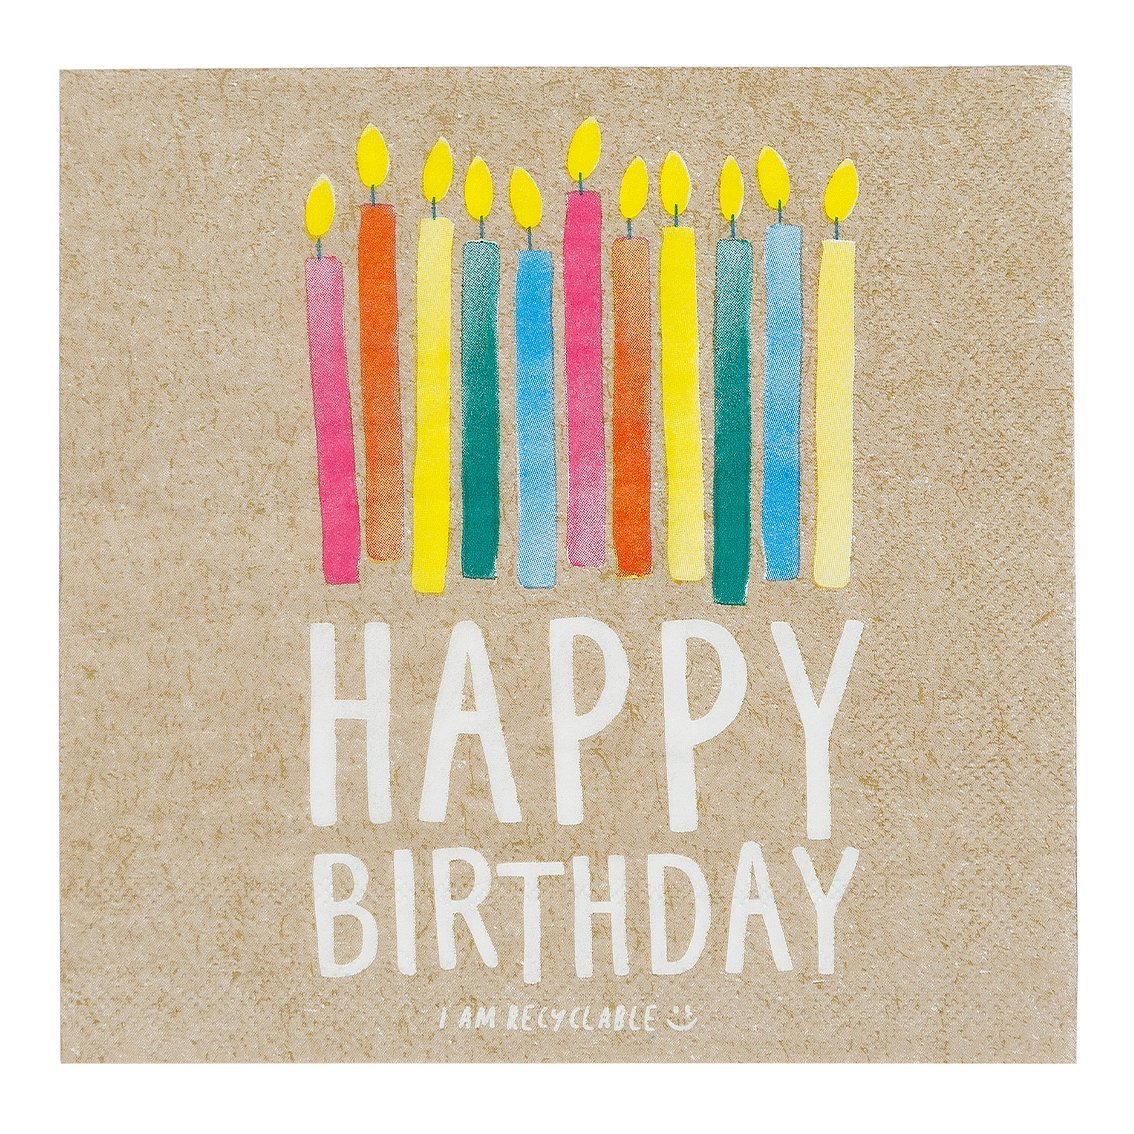 Party Like There is a Tomorrow Napkins